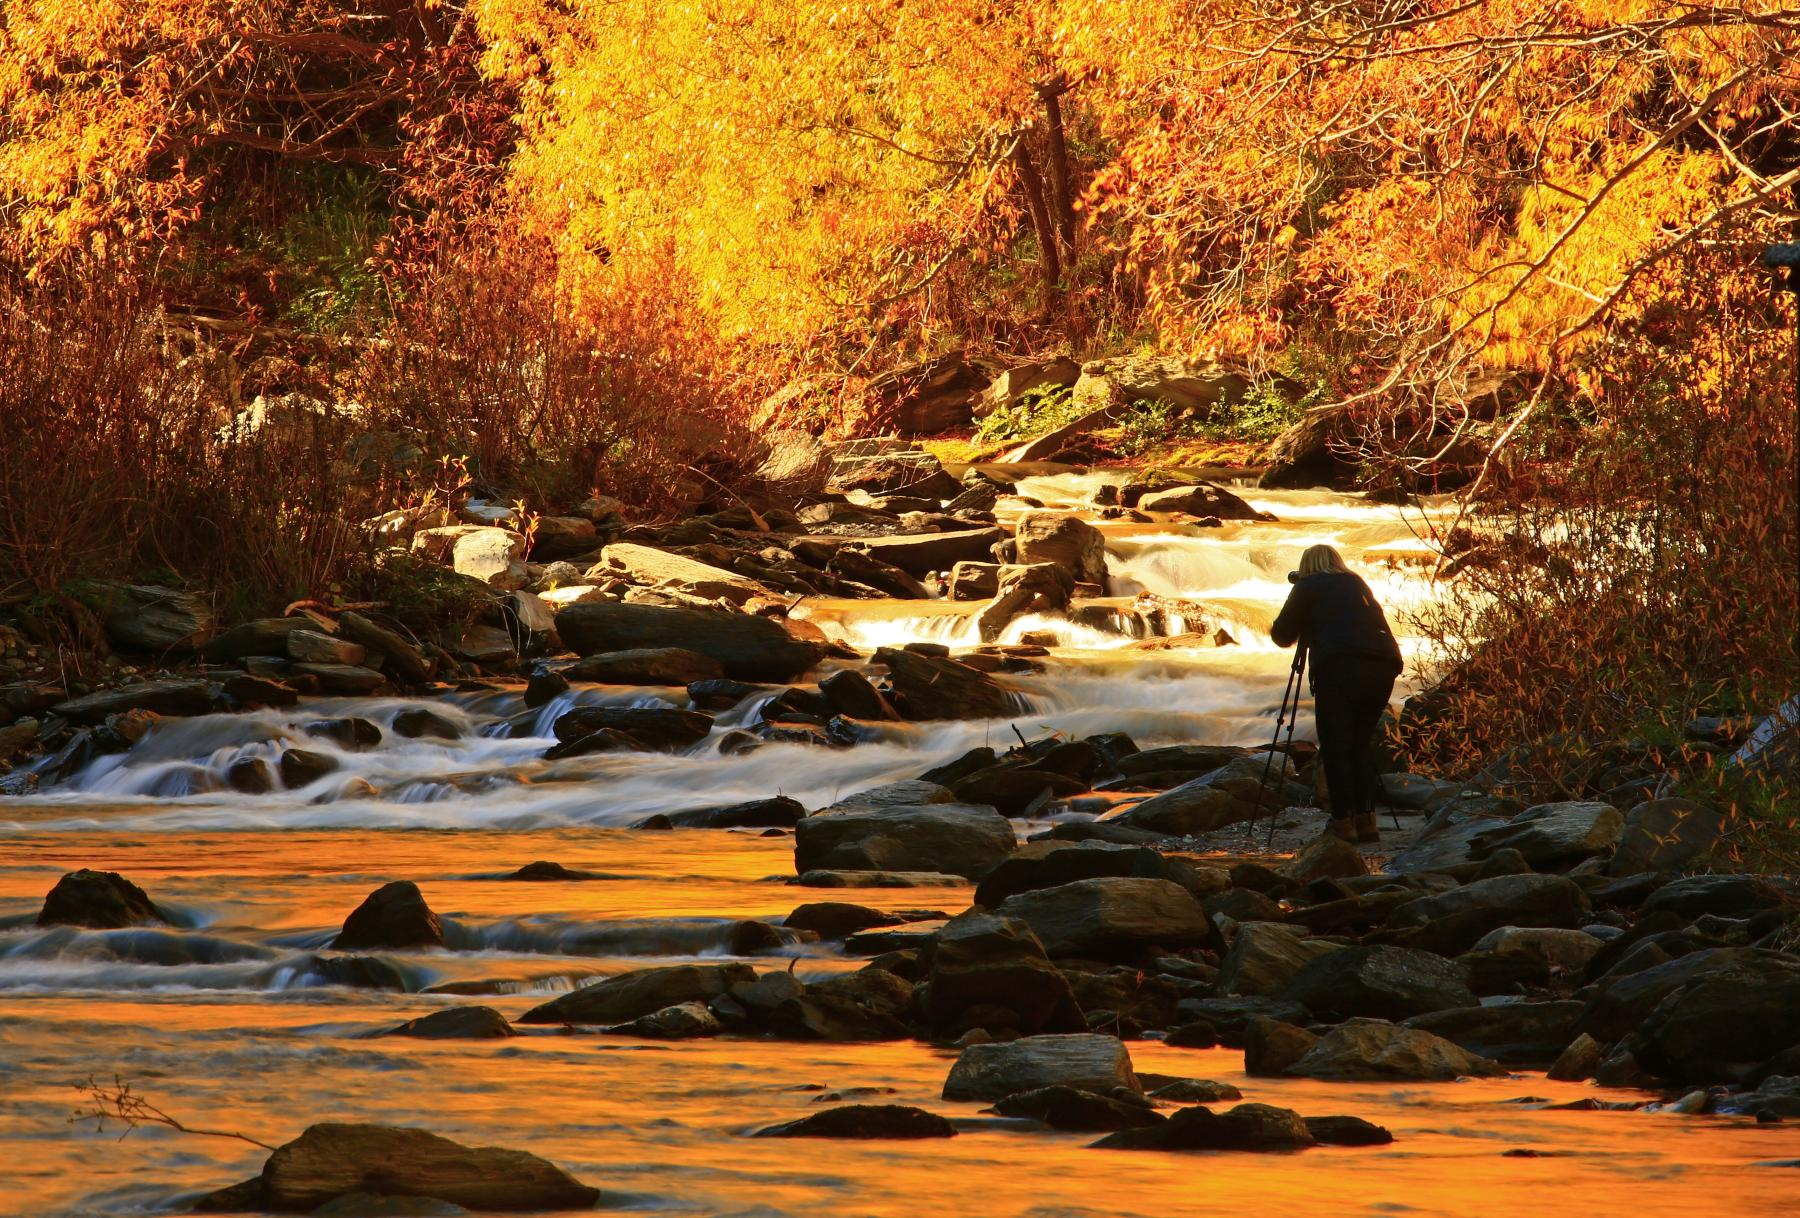 Photographer shooting the Arrow River in Autumn